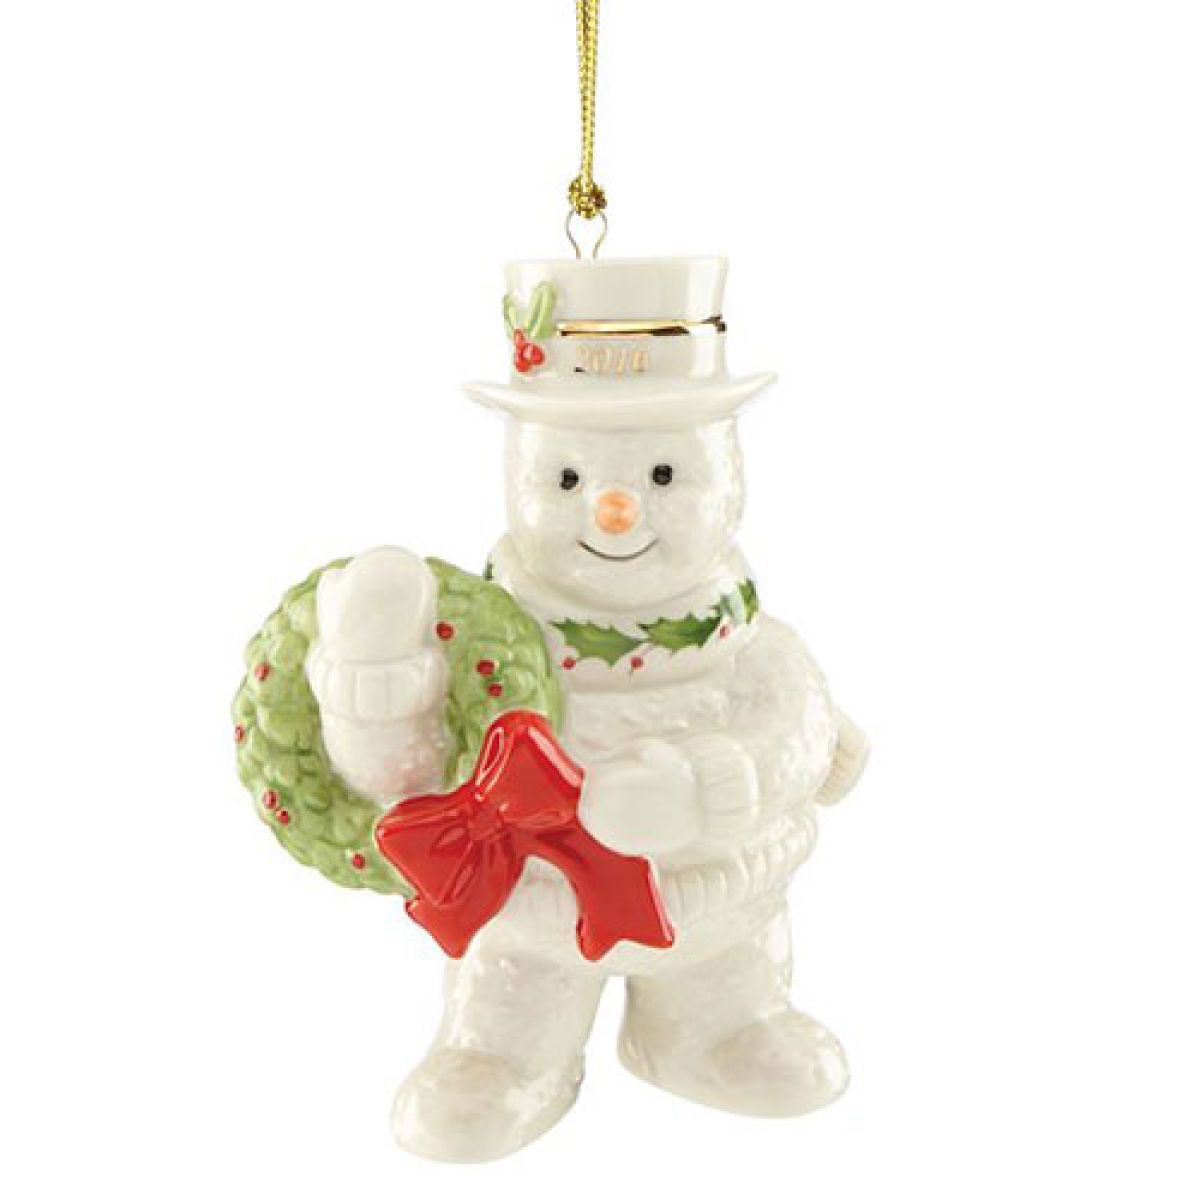 lenox 2016 happy holly days snowman ornament boscovs lenox christmas ornaments snowman ornaments